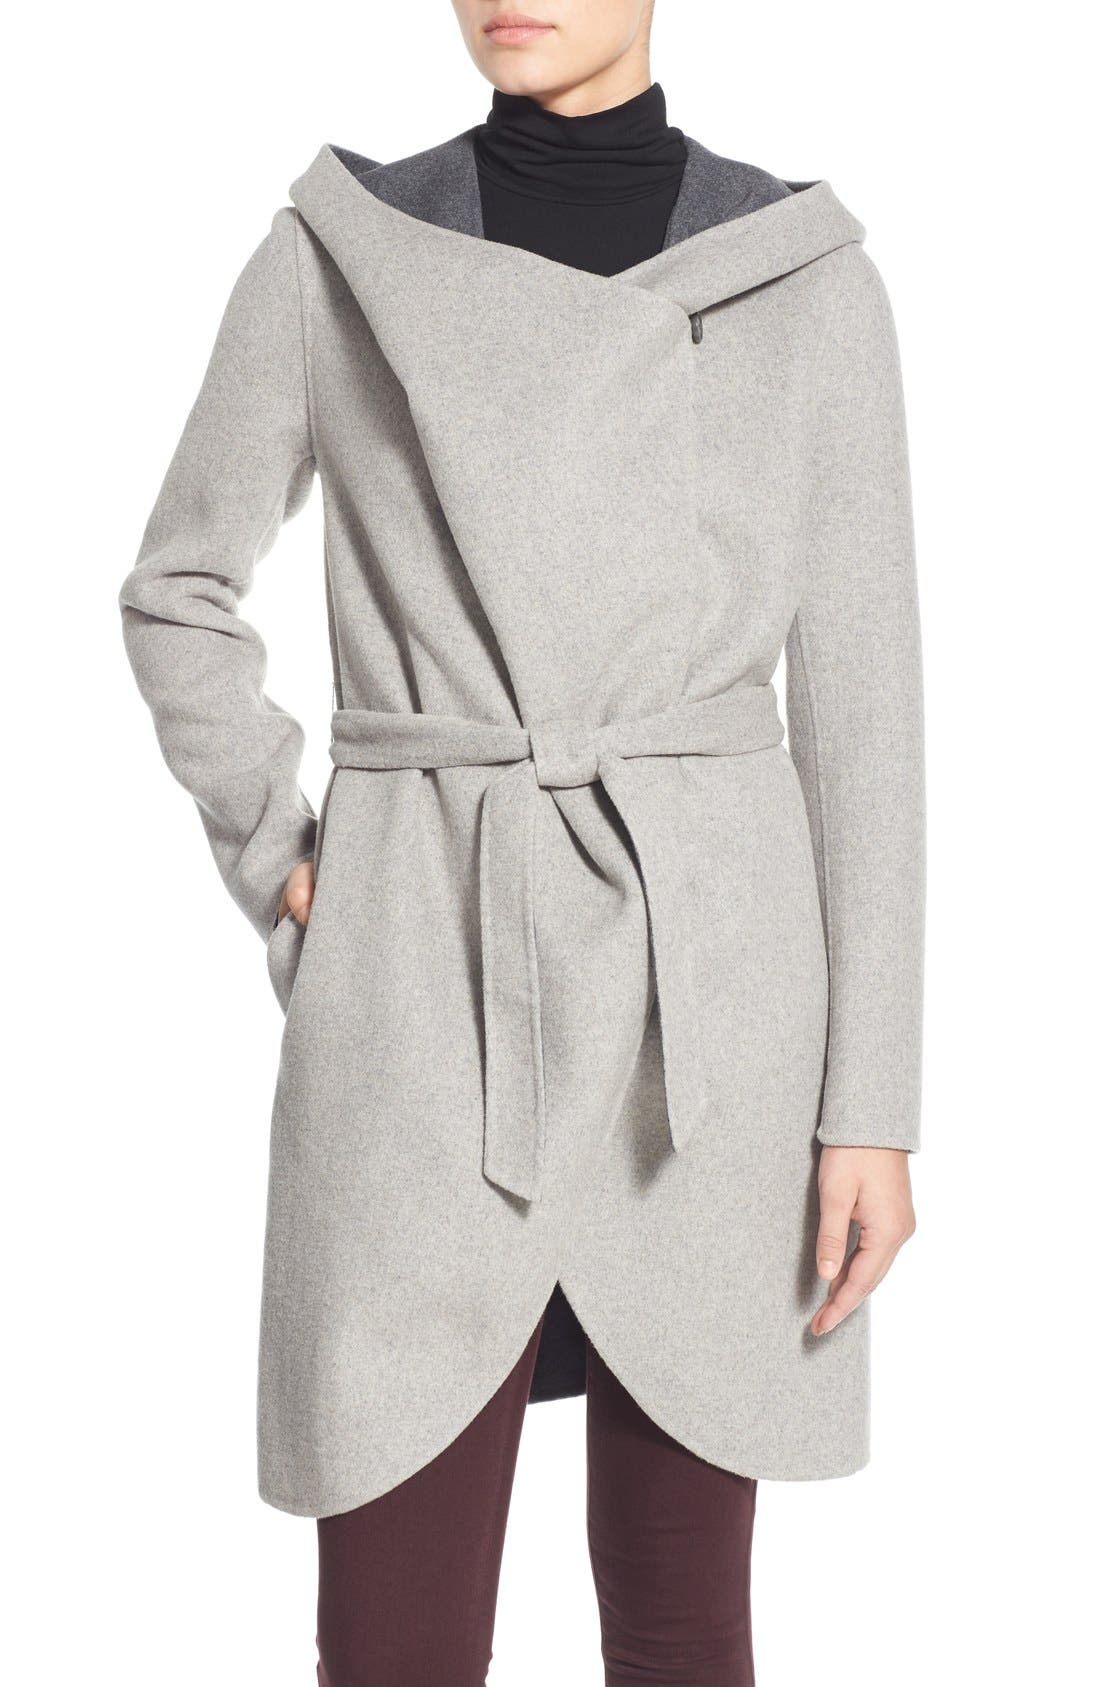 Alternate Image 1 Selected - Soia & Kyo Reversible Double Face Hooded Wrap Jacket